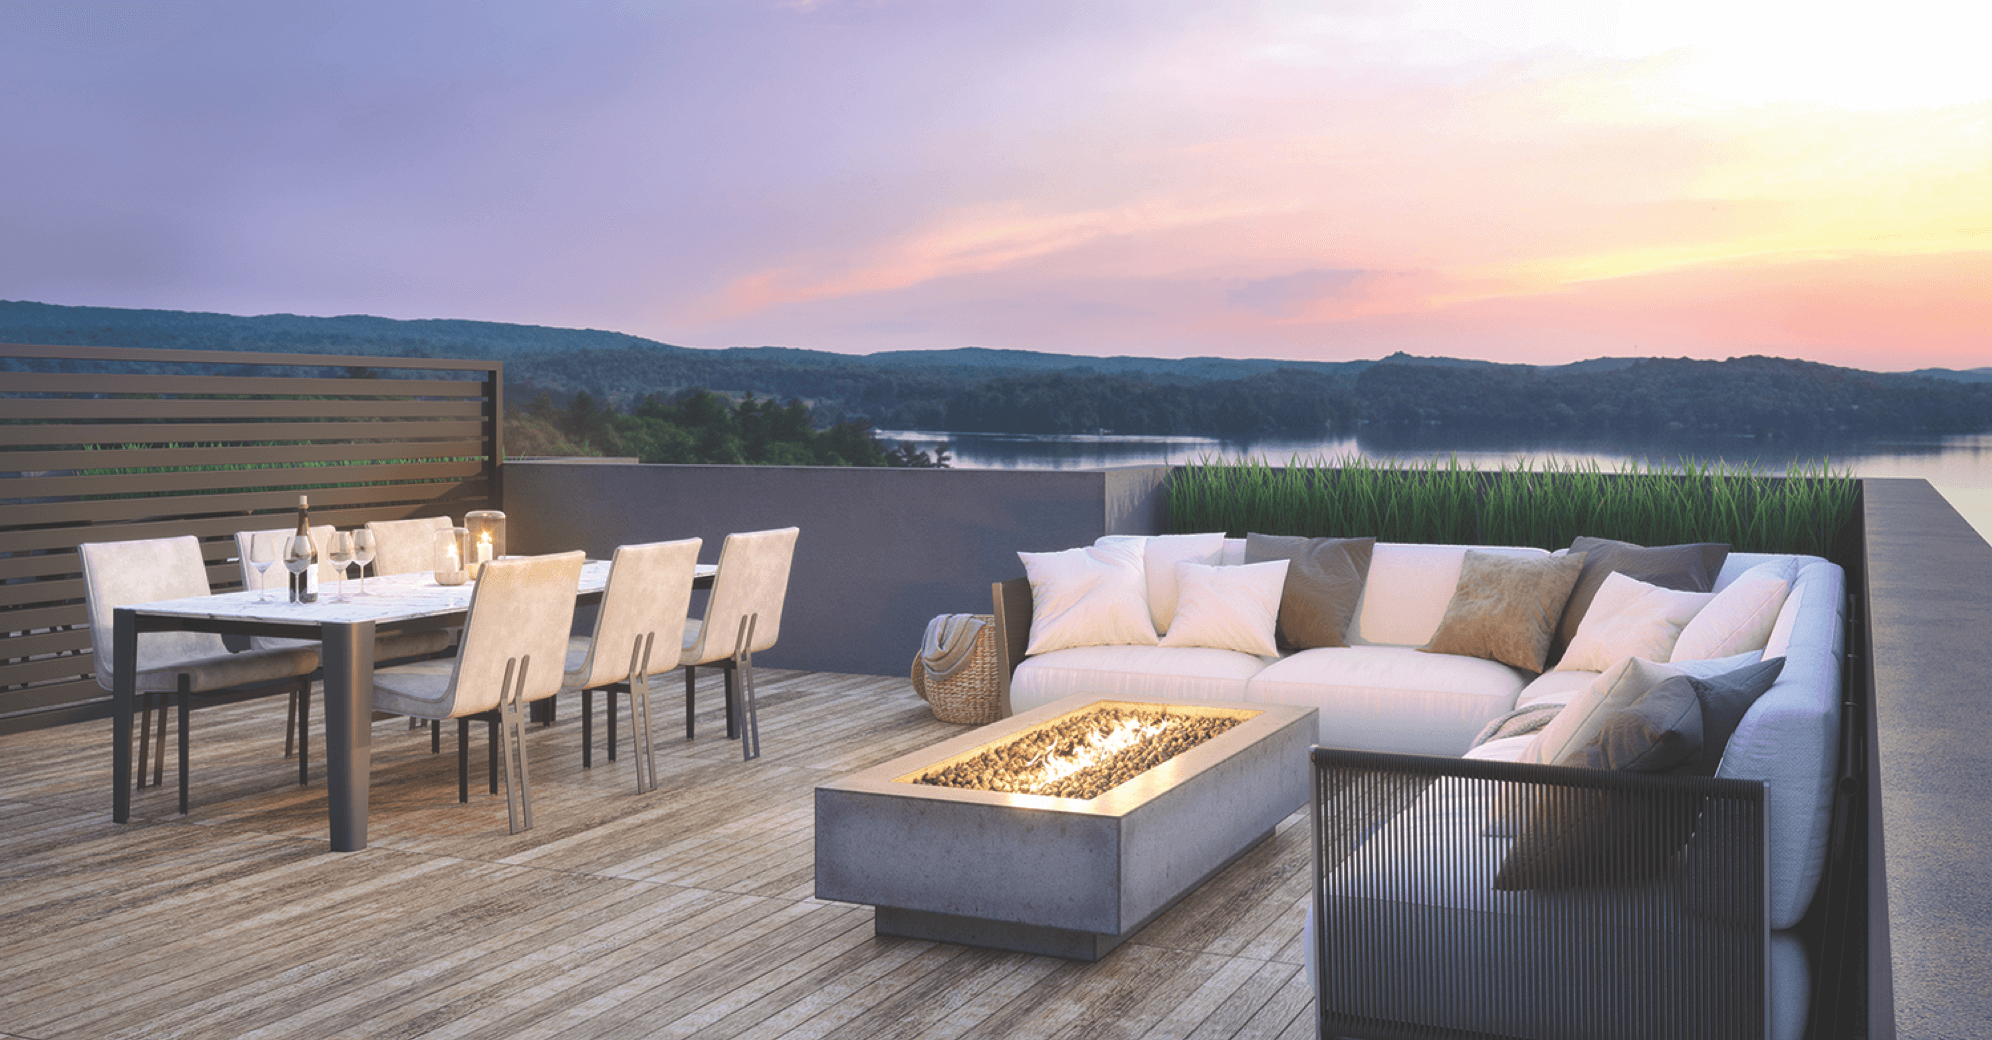 Exterior rendering of The Summit Towns rooftop terrace.